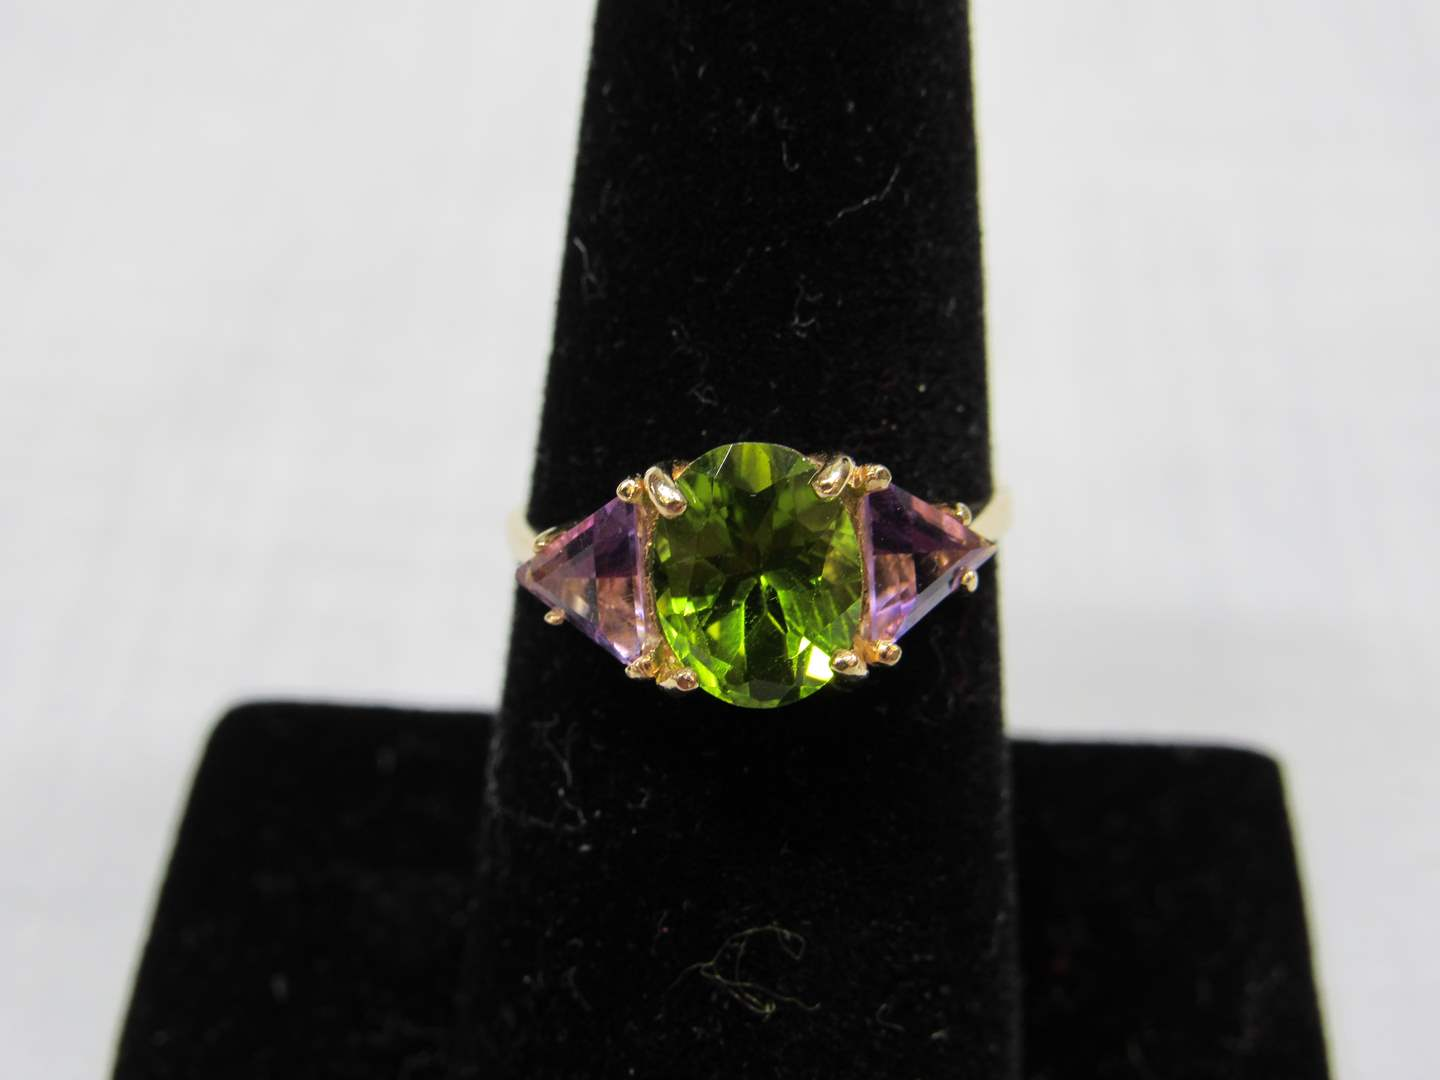 Lot # 105  Green and Amethyst colored stones 14K gold size 8 ring 2.42 grams  (main image)